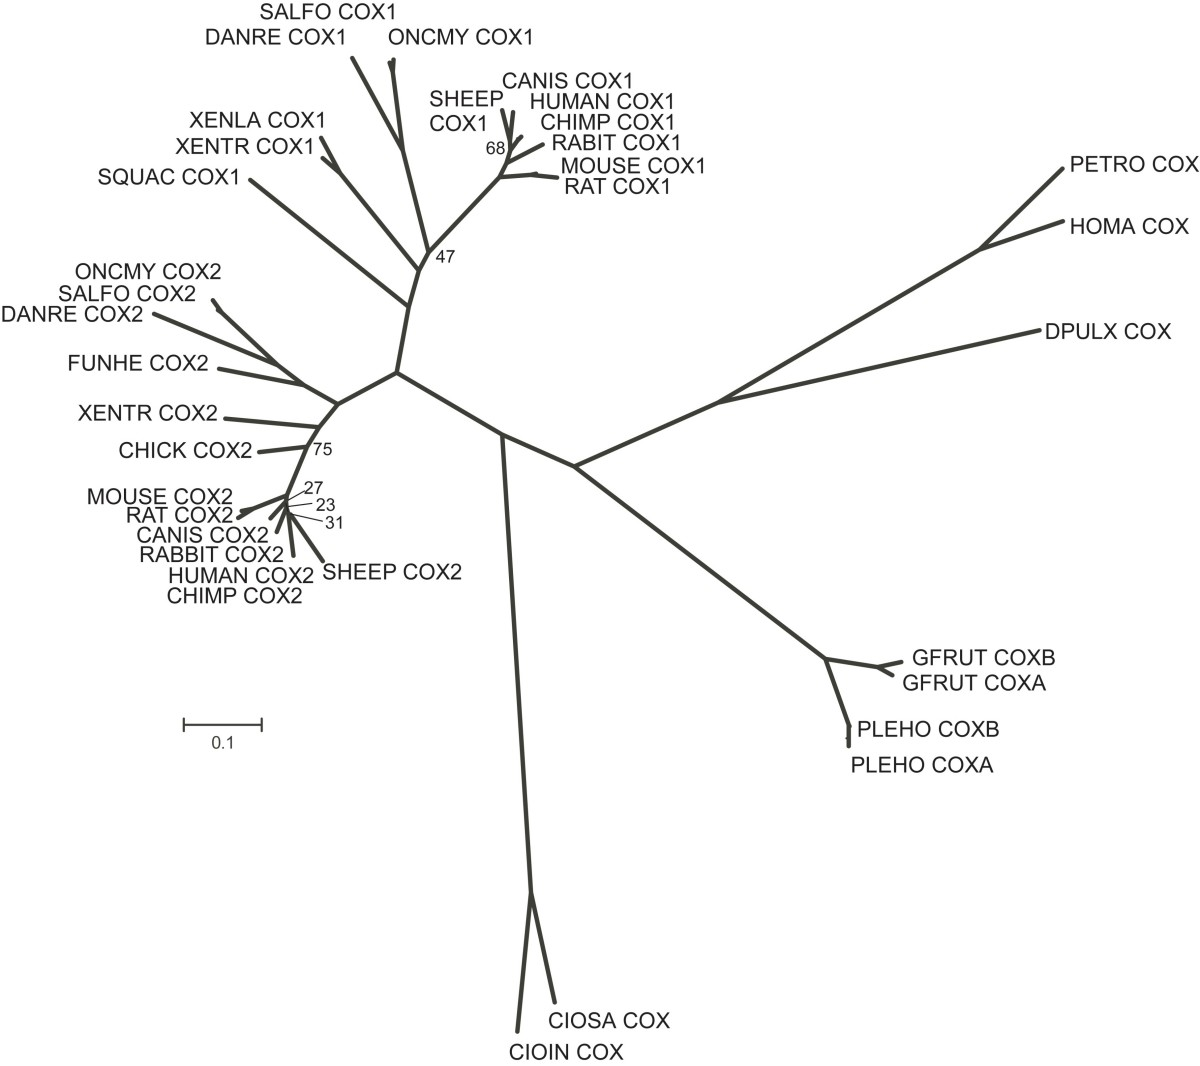 http://static-content.springer.com/image/art%3A10.1186%2F1742-9994-5-11/MediaObjects/12983_2008_Article_79_Fig3_HTML.jpg